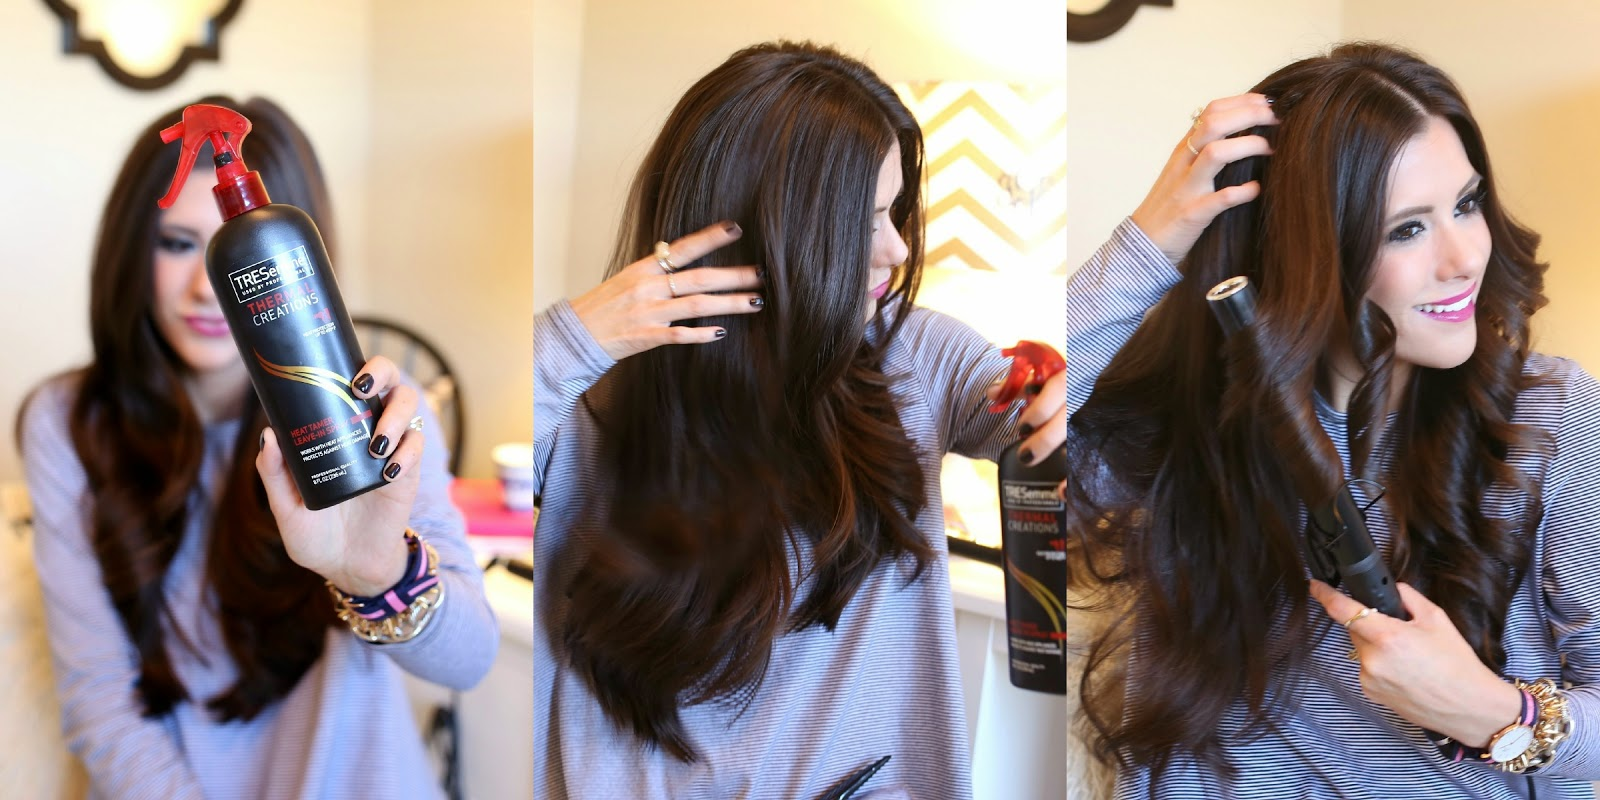 Incredible 12 Brilliant Curling Iron Tricks Everyone Should Know Hairstyle Inspiration Daily Dogsangcom